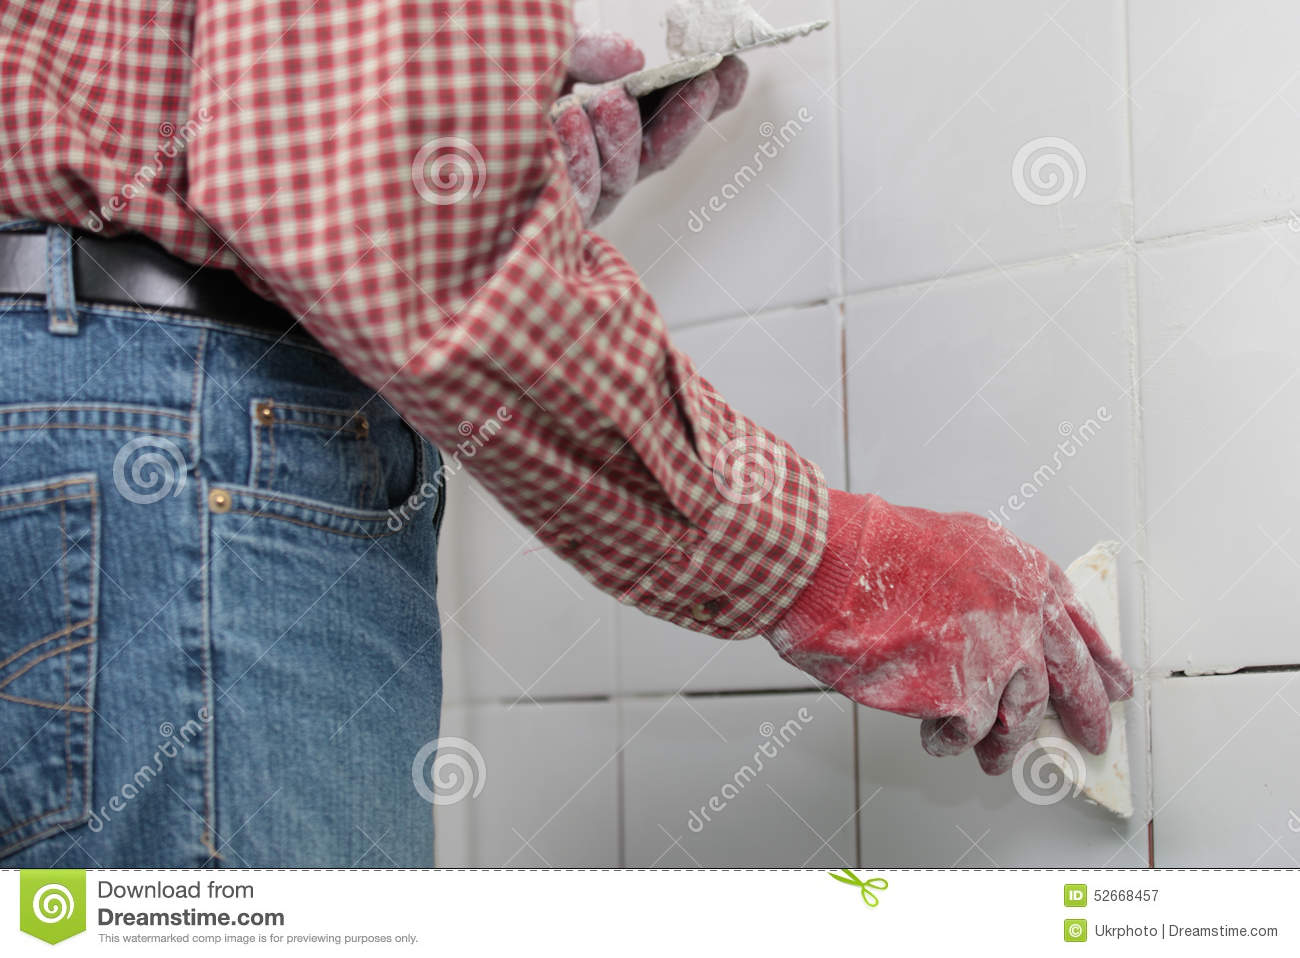 Grouting Ceramic Tiles Stock Image Image Of Blue Jeans 52668457